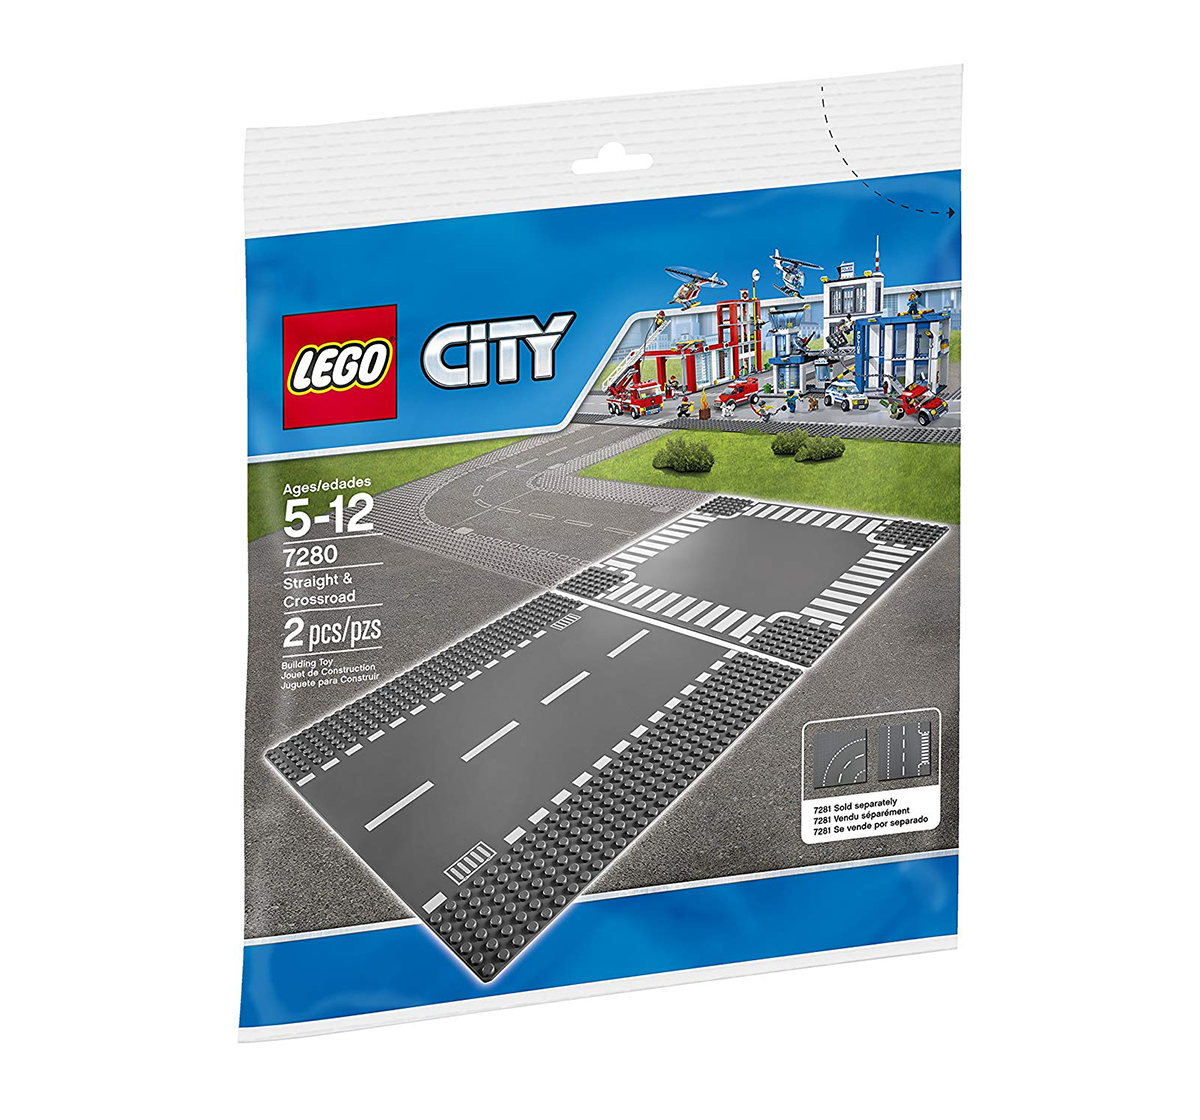 LEGO |  Lego 7280 City Town Straight And Crossroad Plate Building Kit, Multi Color Blocks for Kids age 5Y+ (Black)